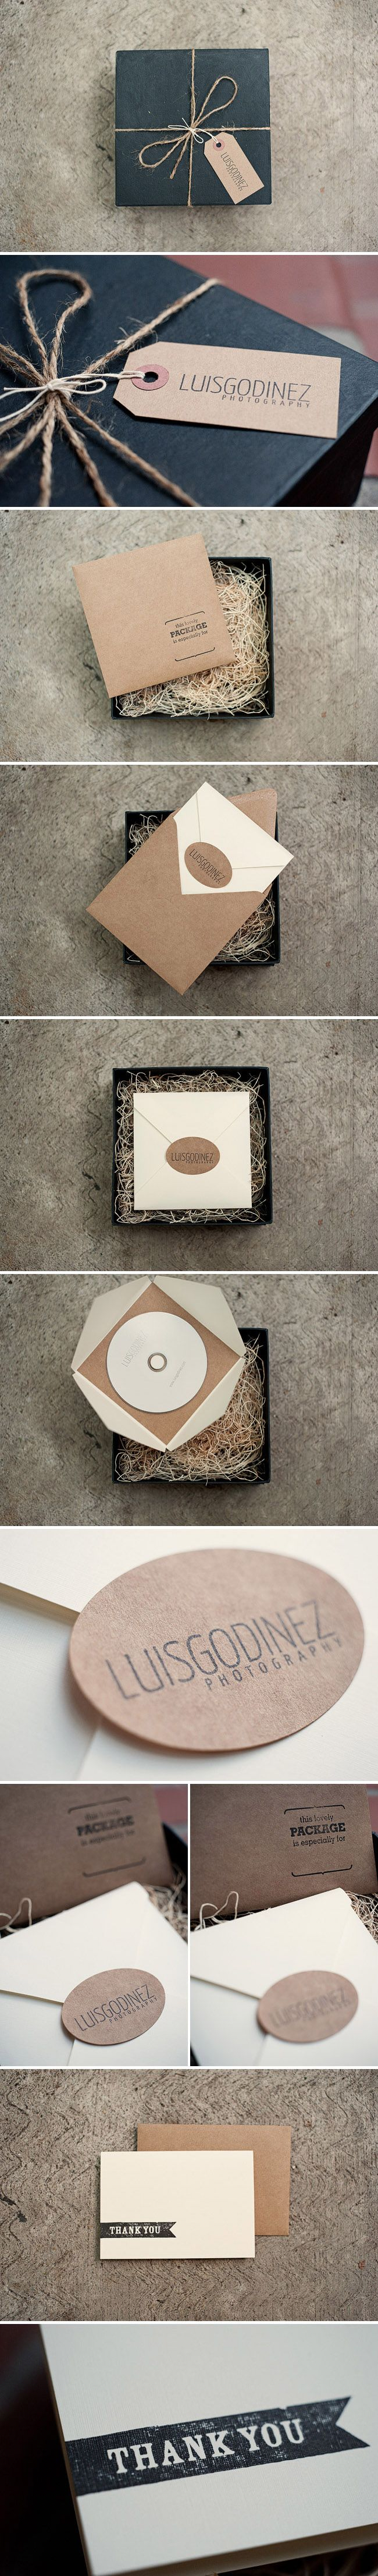 Luis Godinez photography packaging branding PD